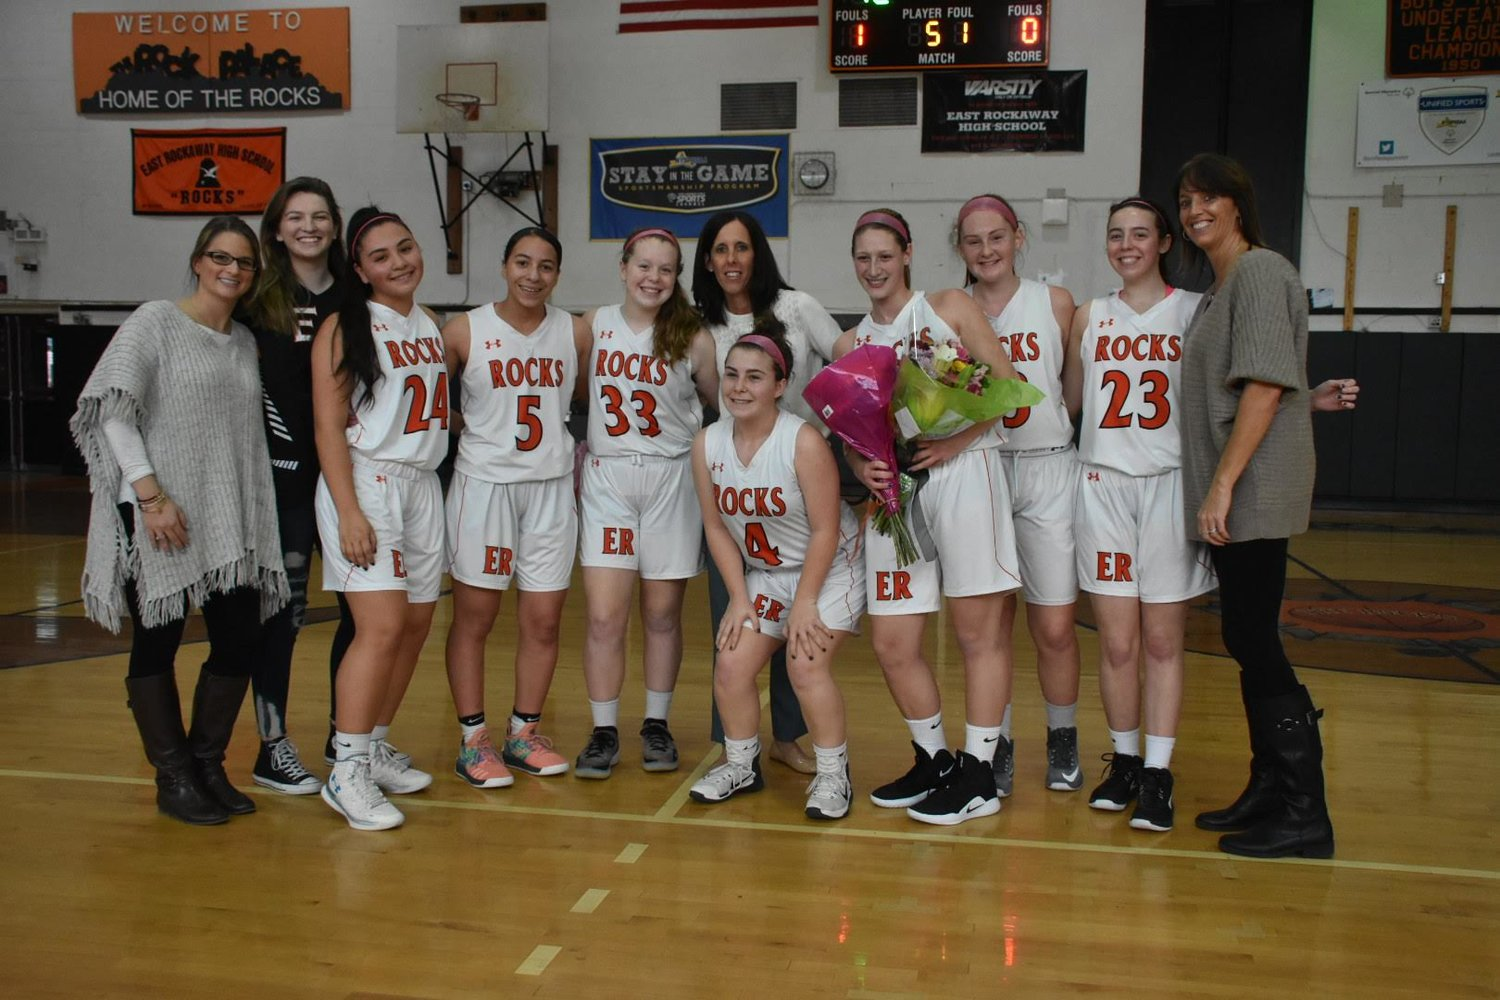 DeGiulio is known as a leader on the team and was surrounded by her teammates after notching the milestone.